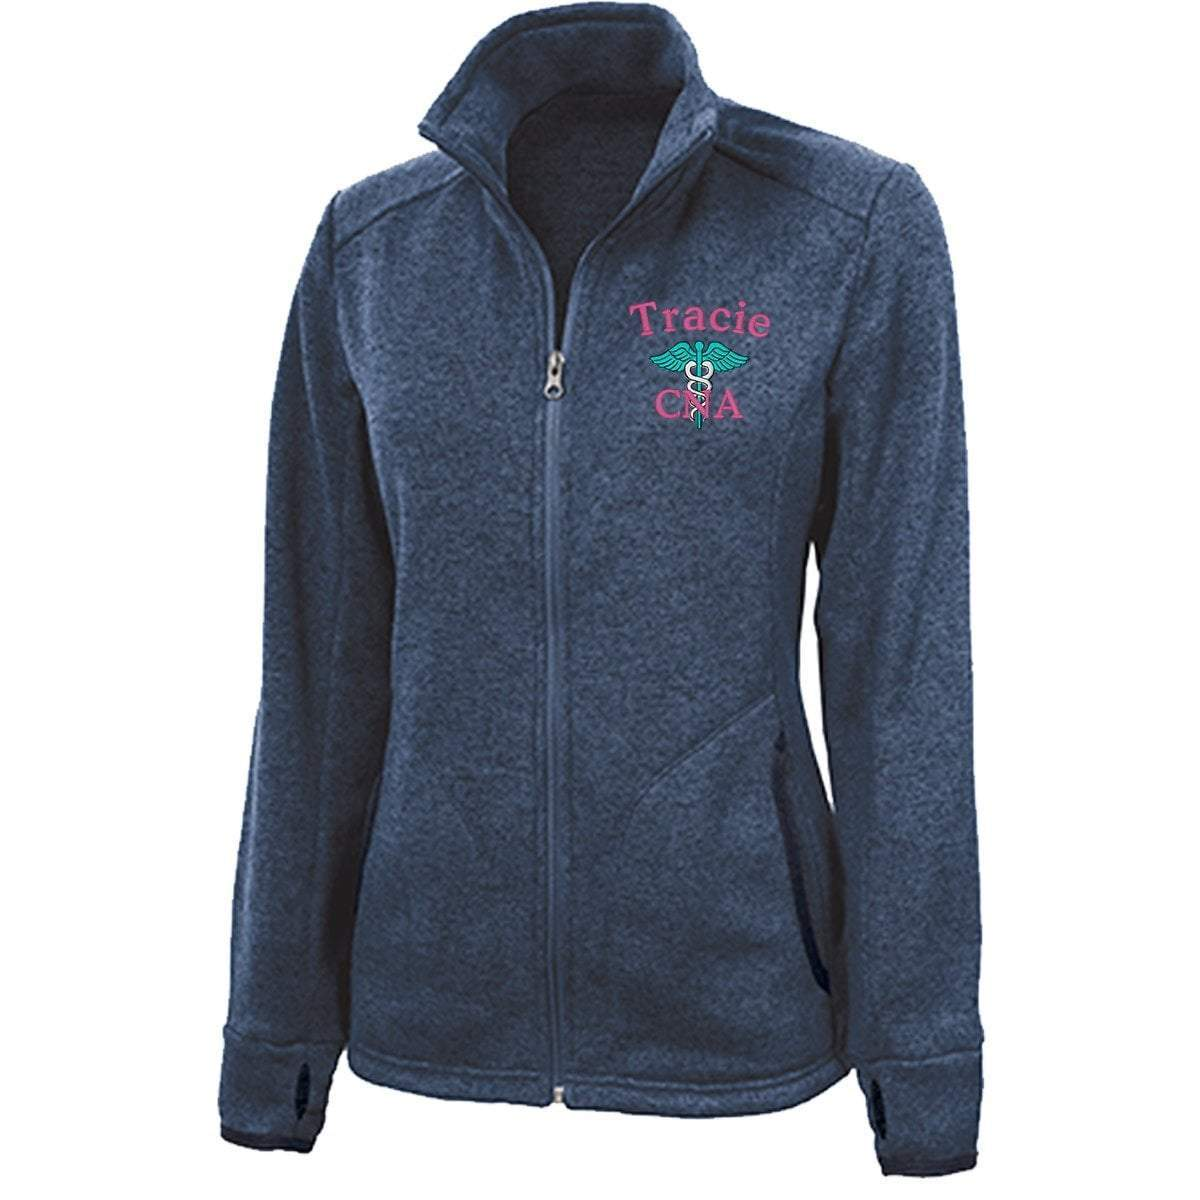 Charles River Apparel jackets Blue Heather / XS 5493 |  Charles River Women's Heathered Fleece Jacket